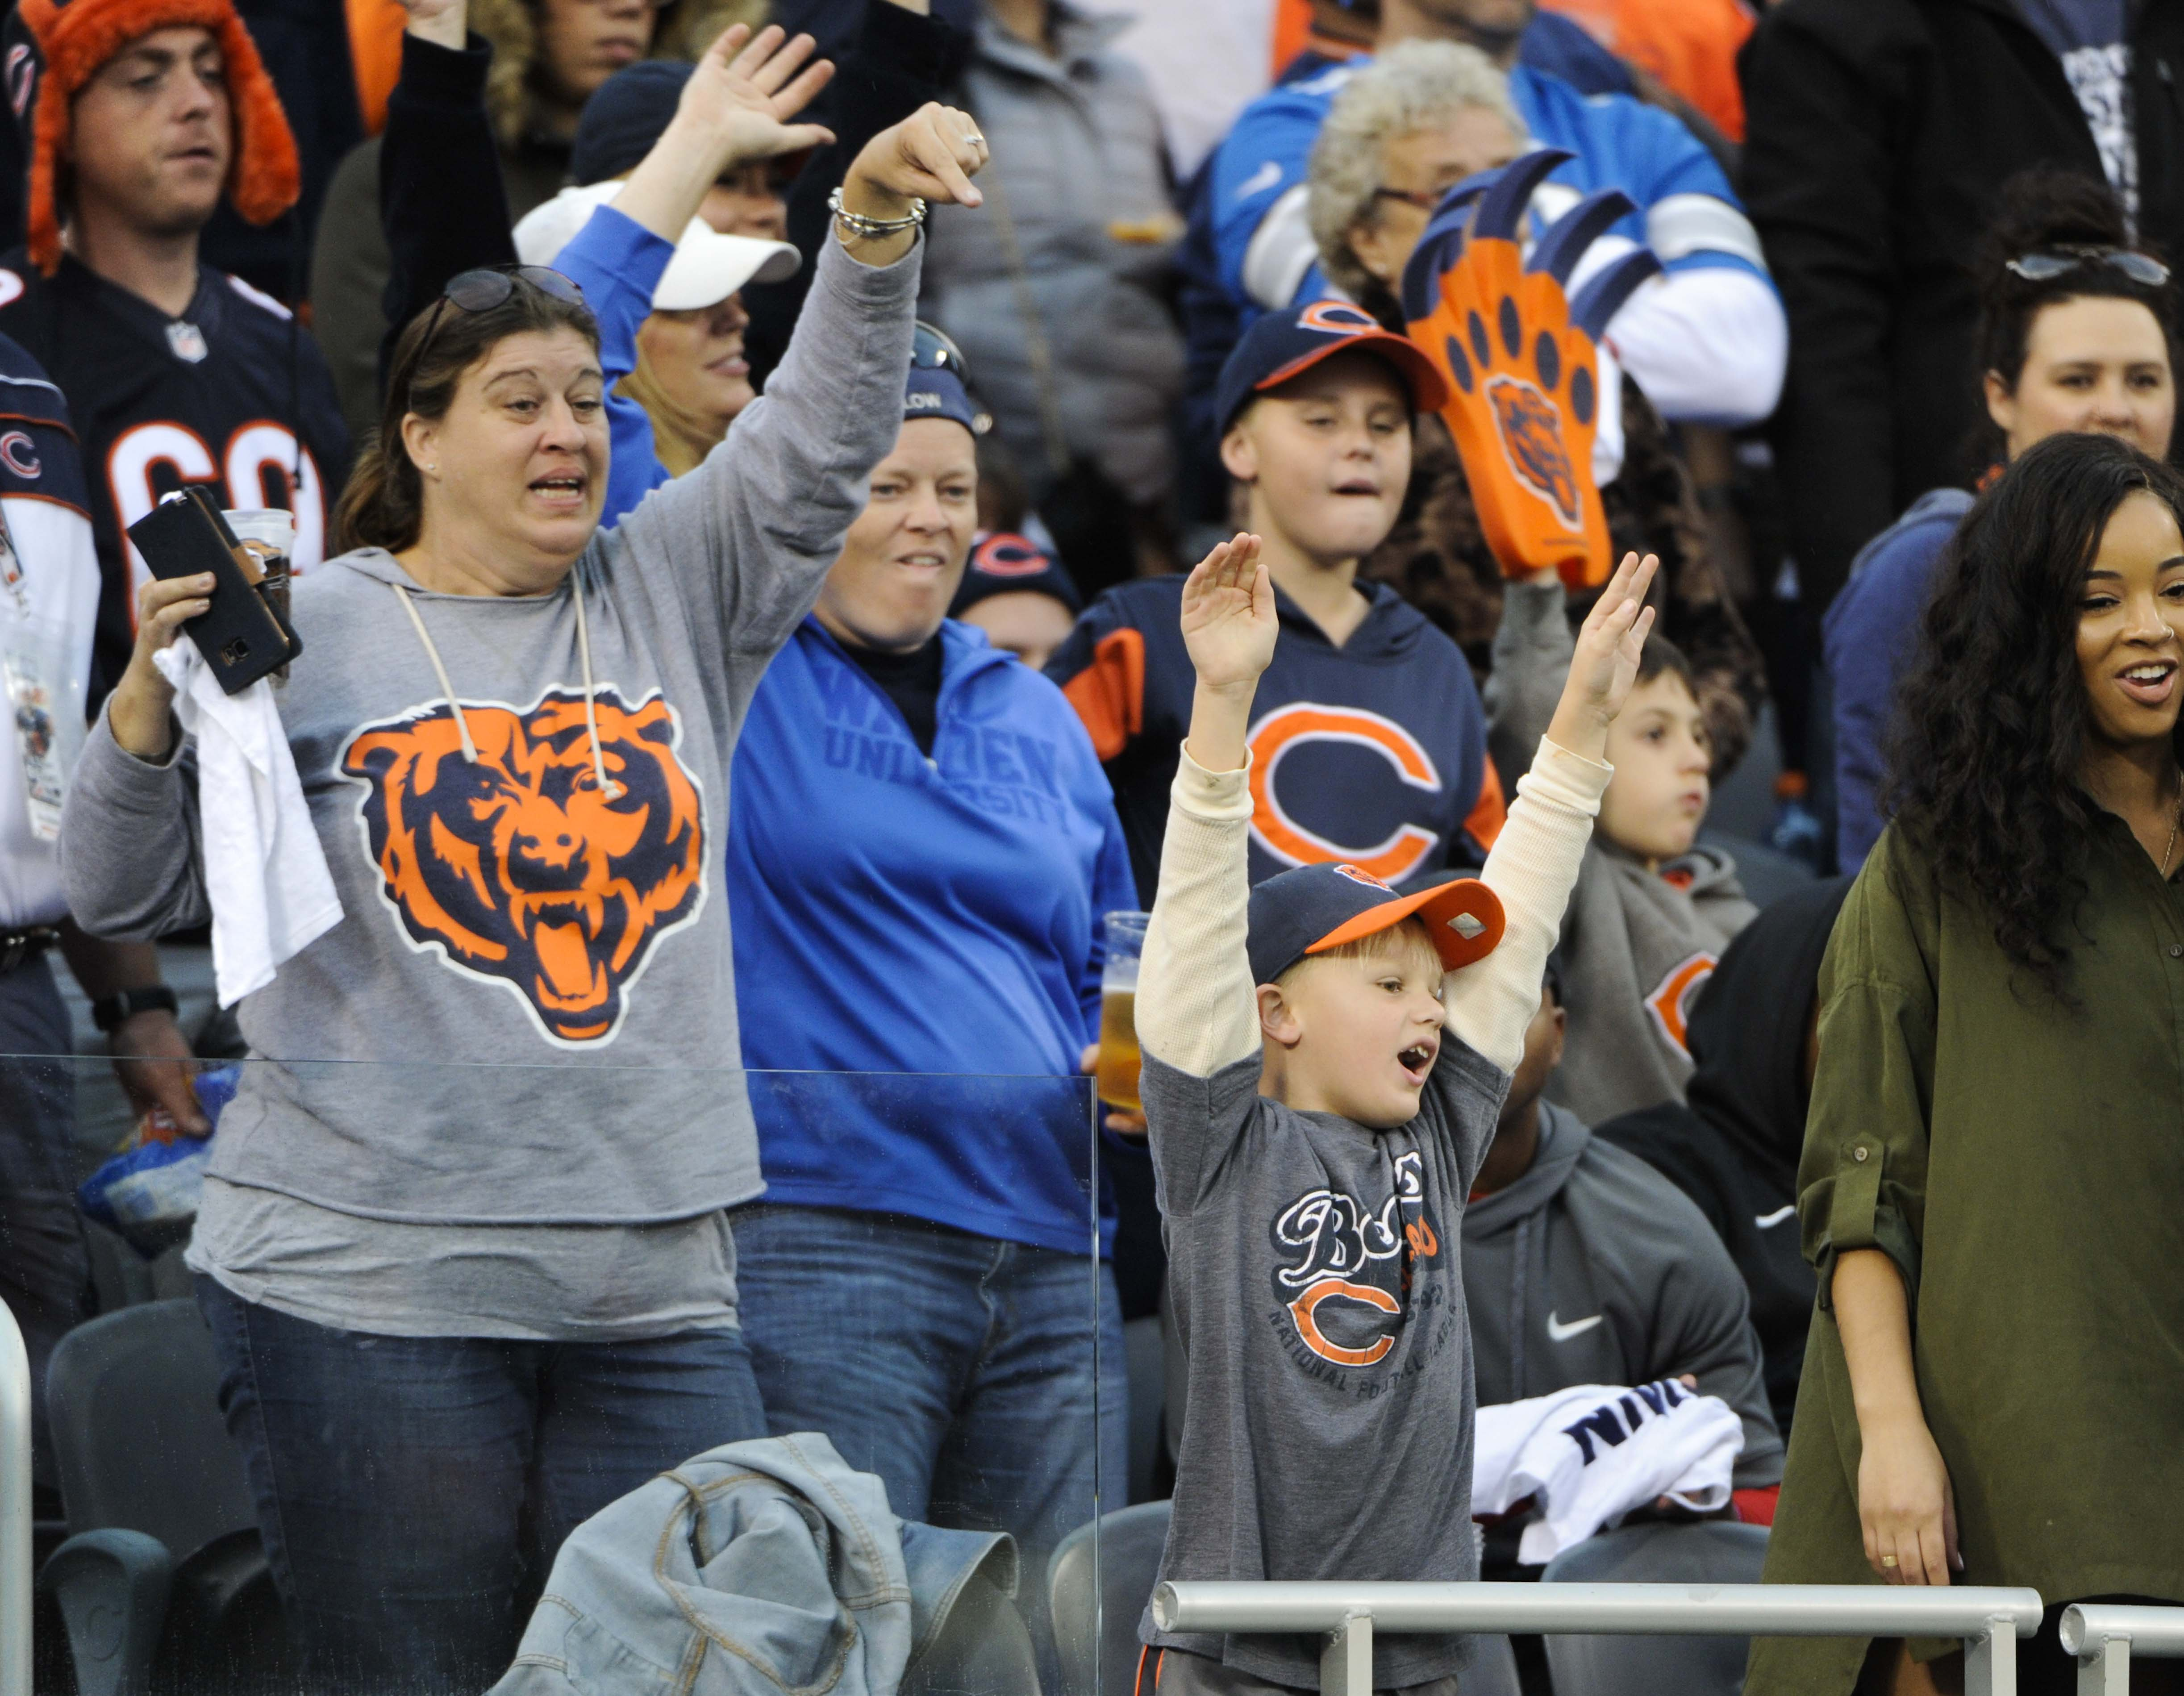 9590603-nfl-detroit-lions-at-chicago-bears